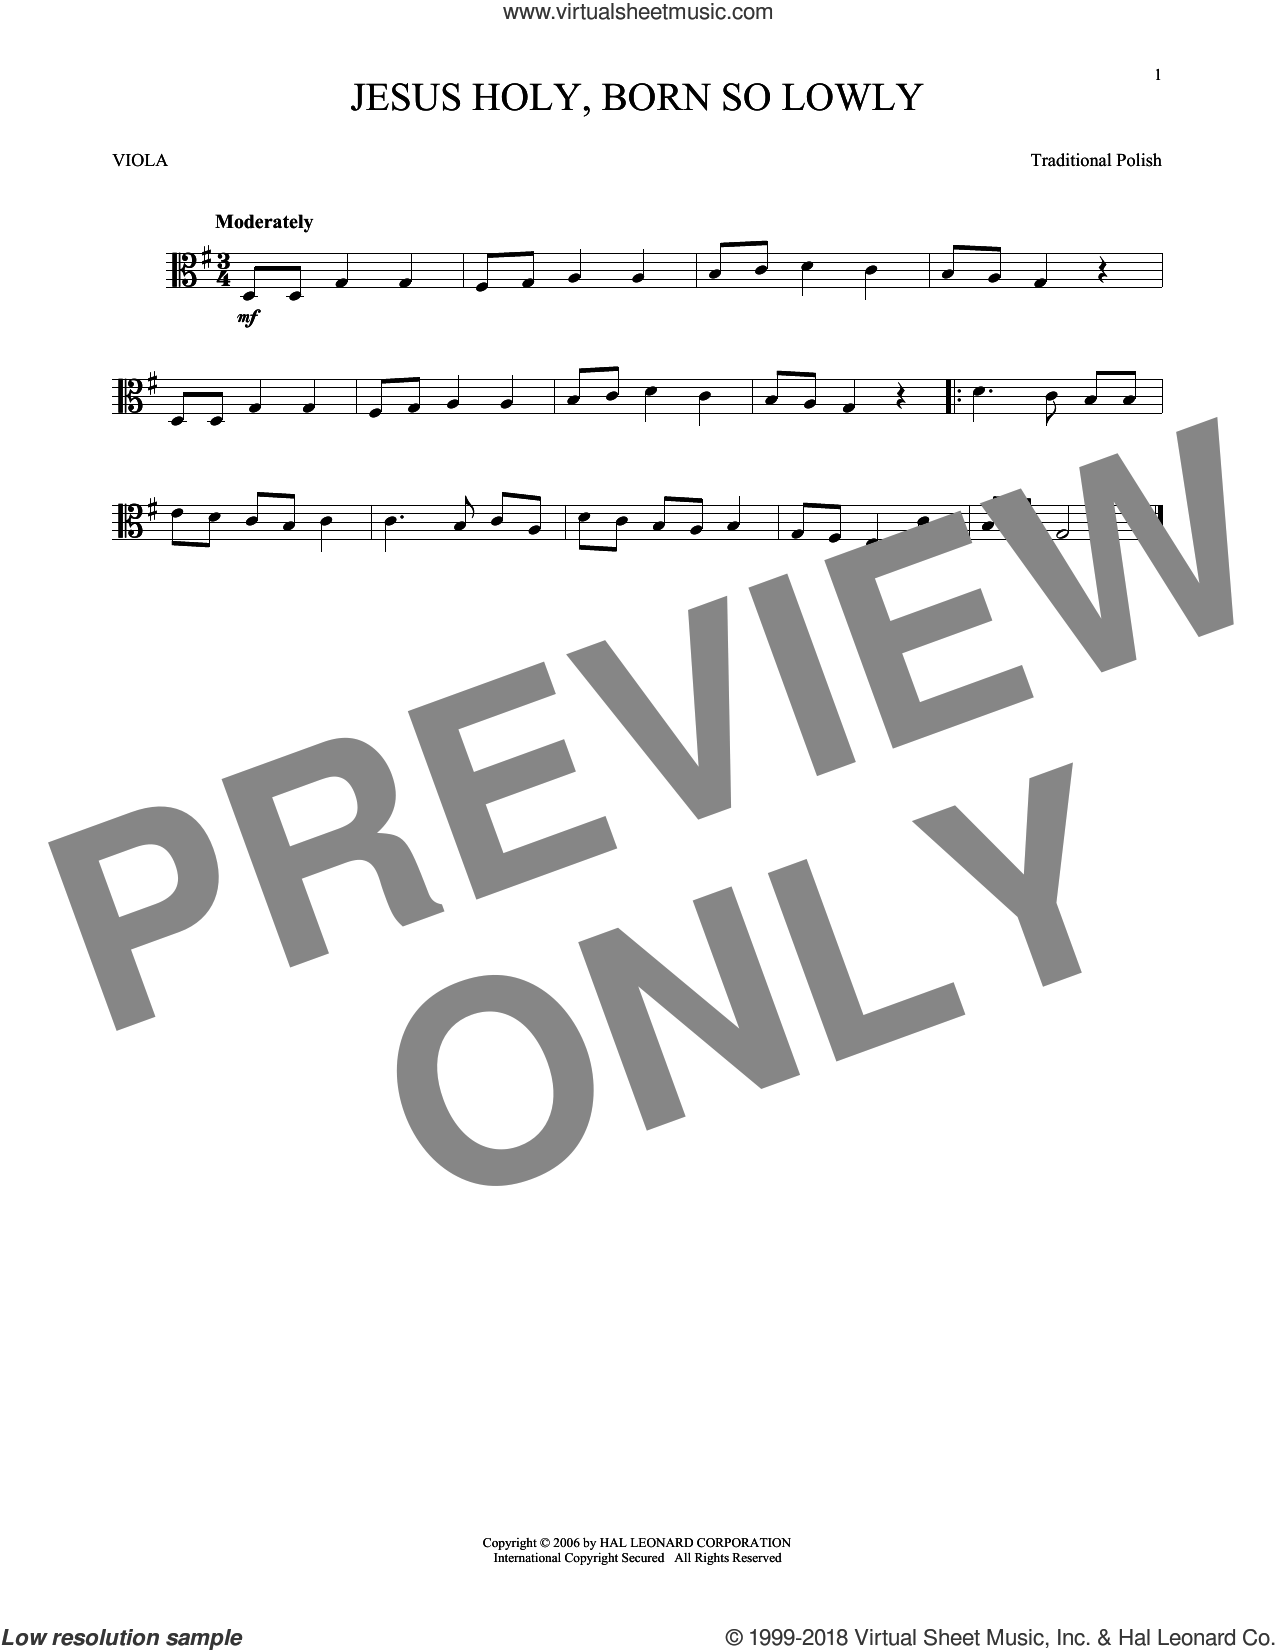 Jesus Holy, Born So Lowly sheet music for viola solo. Score Image Preview.